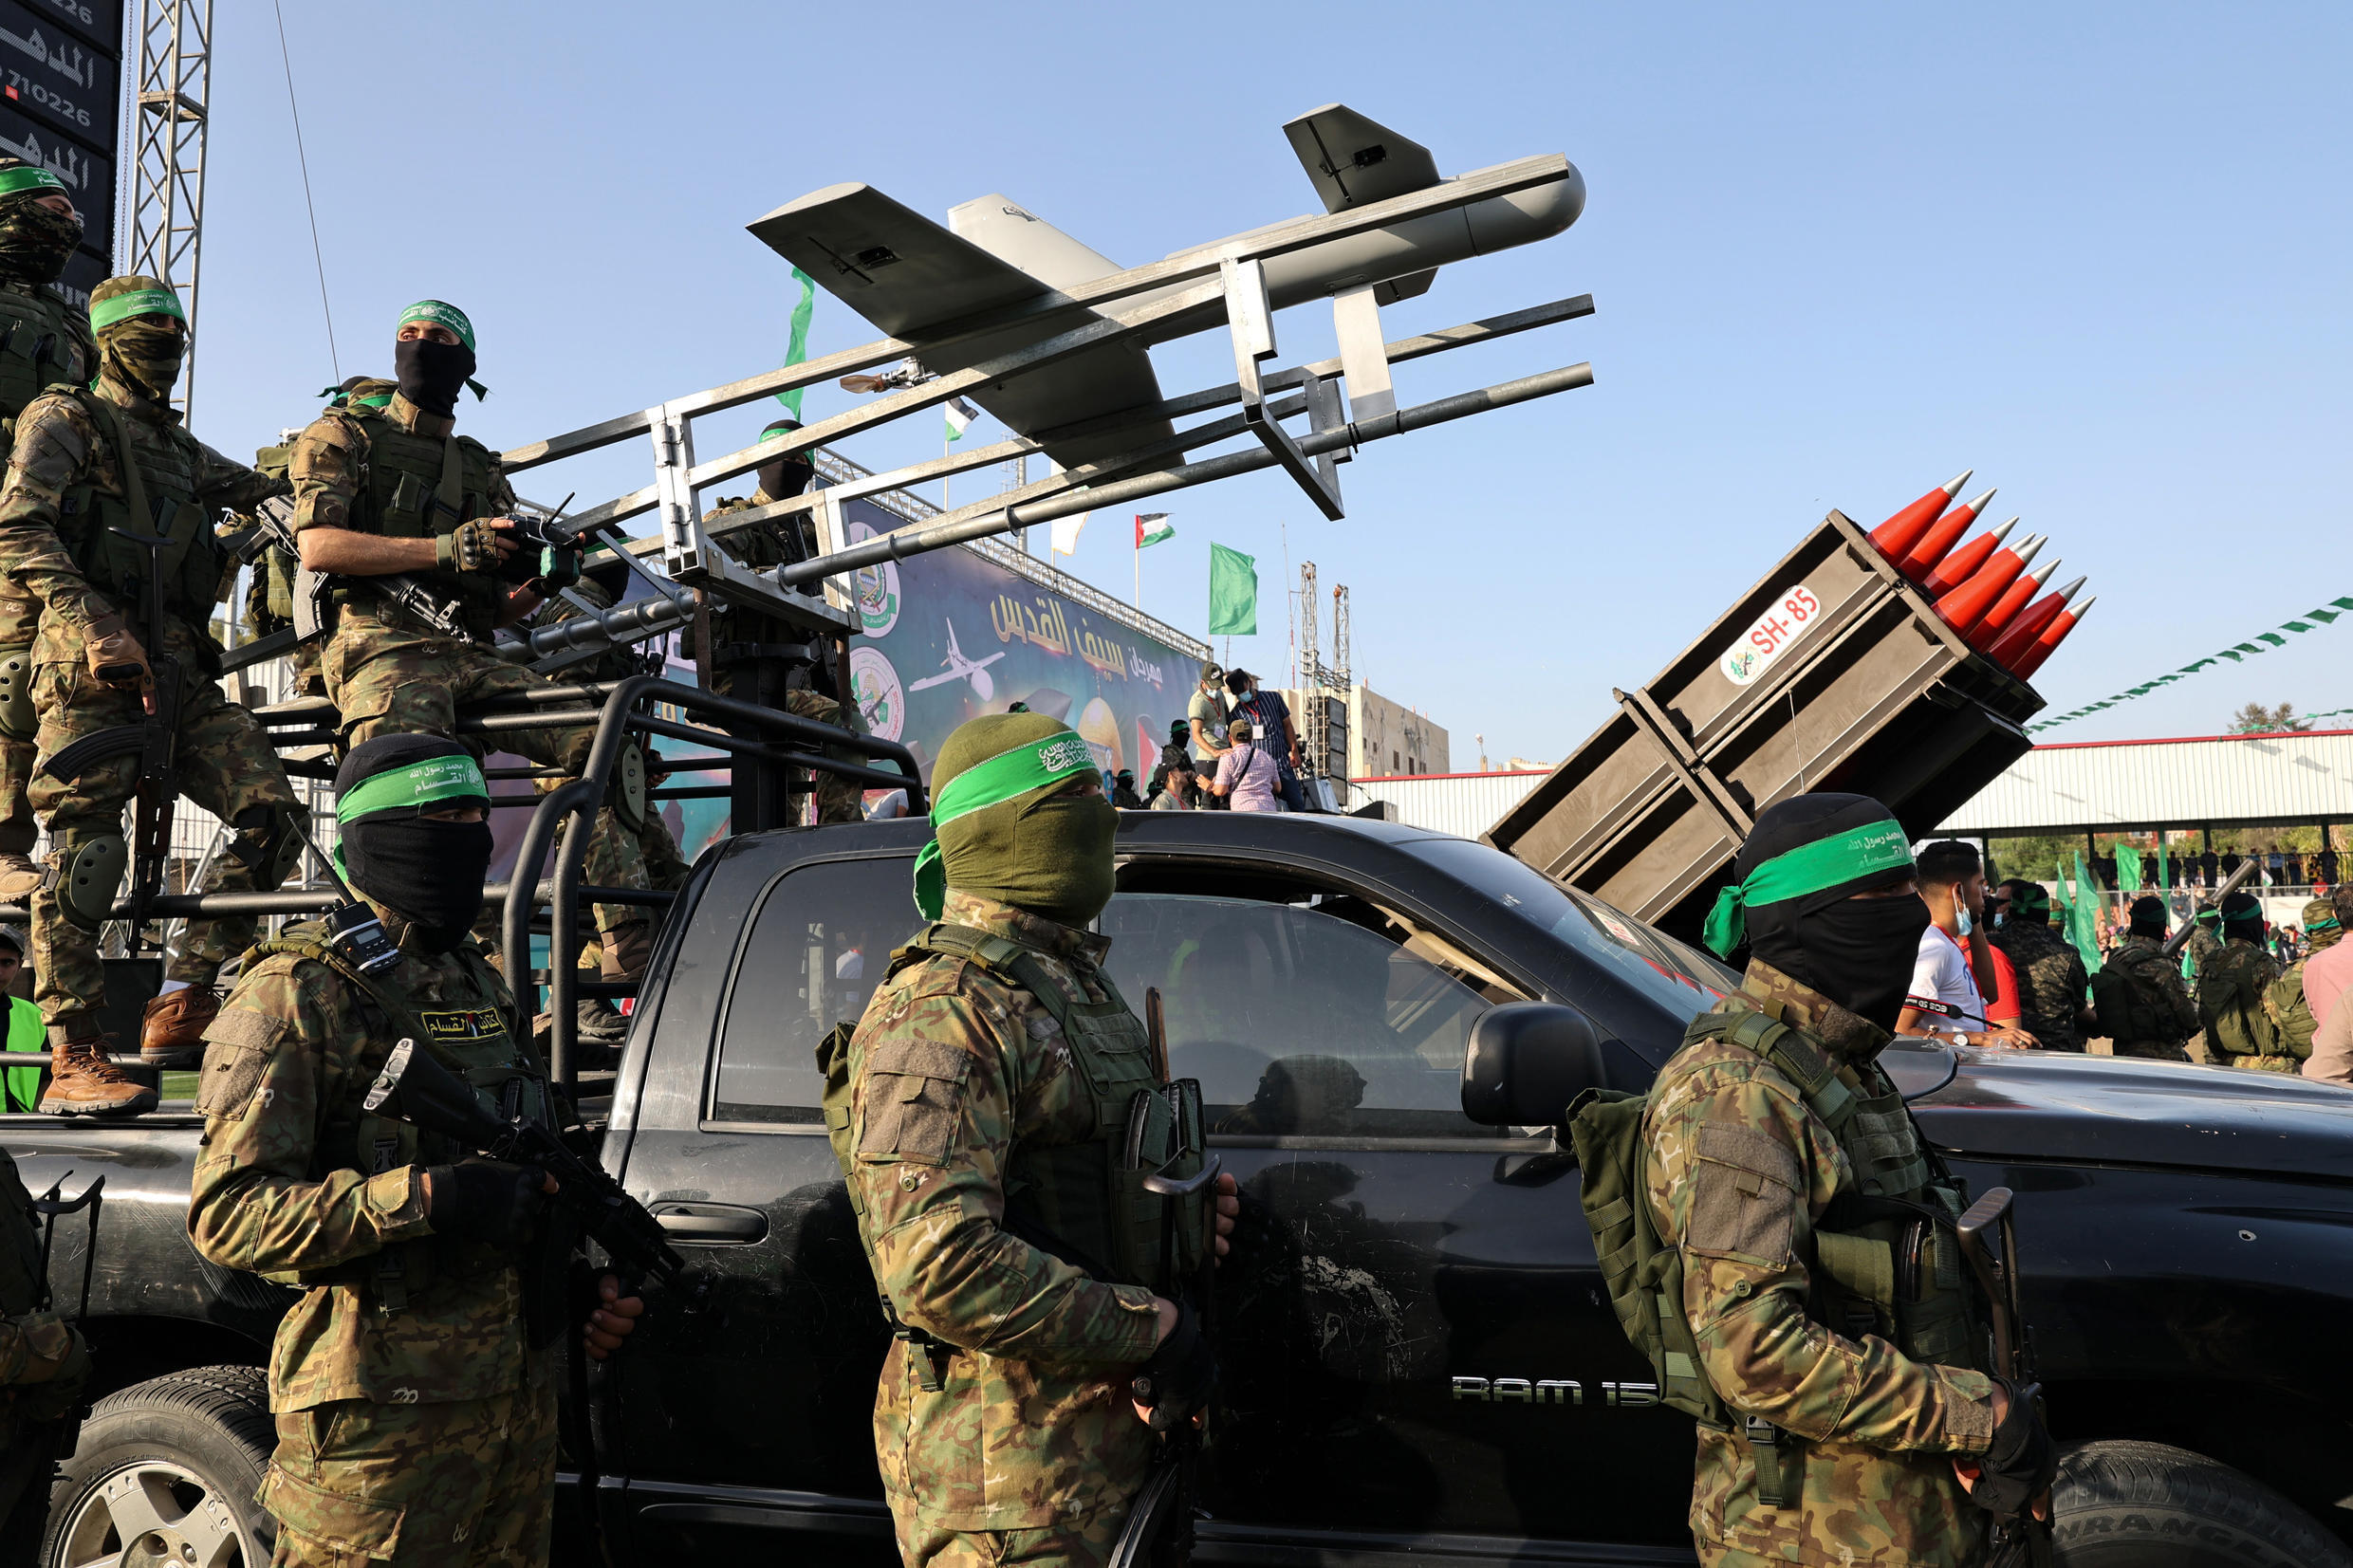 Fighters of the Hamas military wing Ezzedin al-Qassam Brigades display military hardware during a parade in the Gaza city of Rafah a week after Hamas and Israel agreed a ceasefire ending a deadly and devastating 11-day confrontation